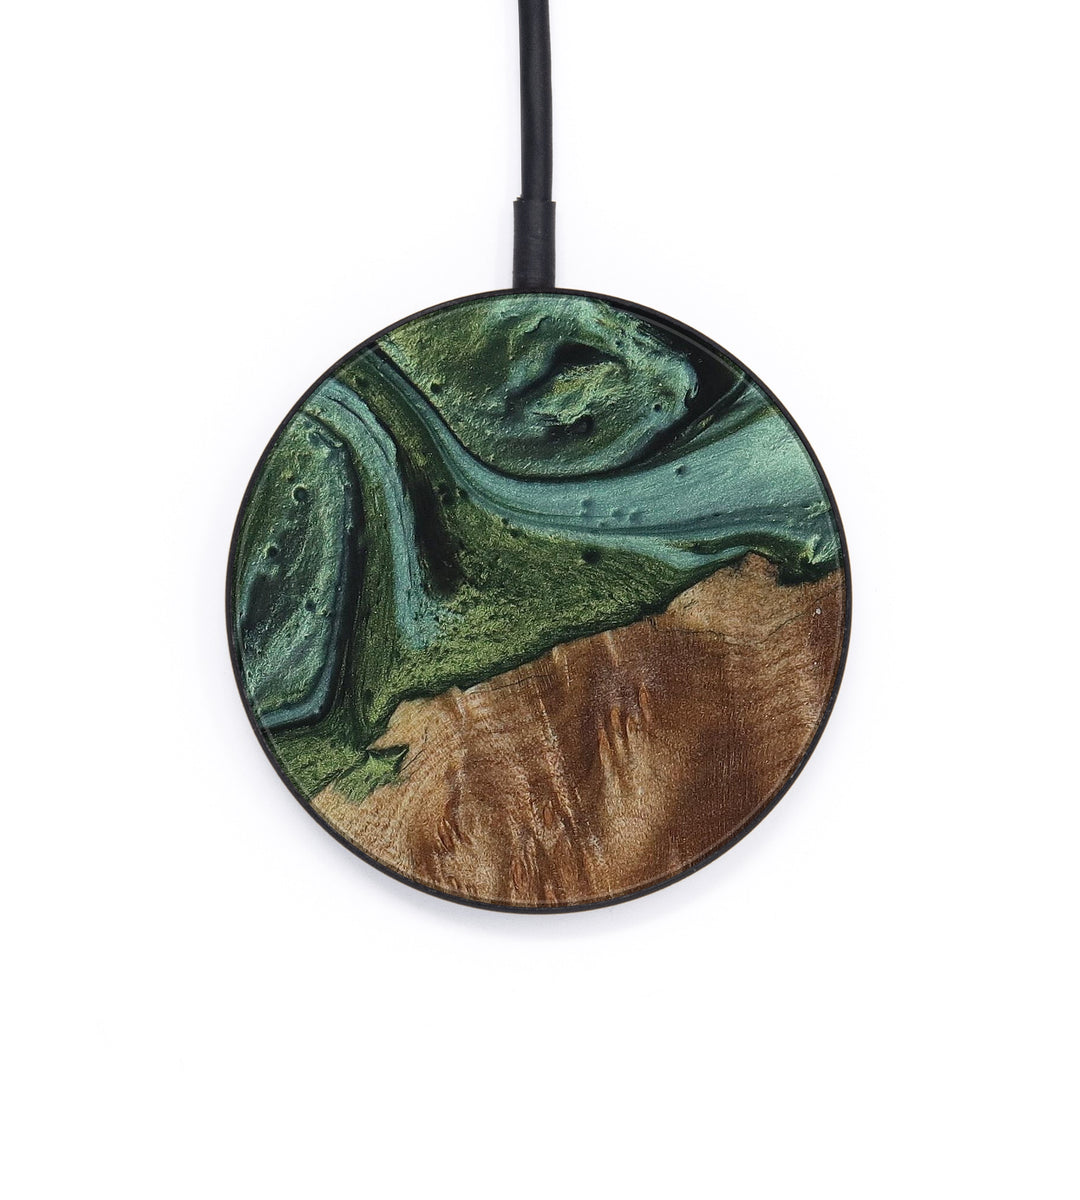 Circle Wood+Resin Wireless Charger - Angele (Dark Green, 422224)